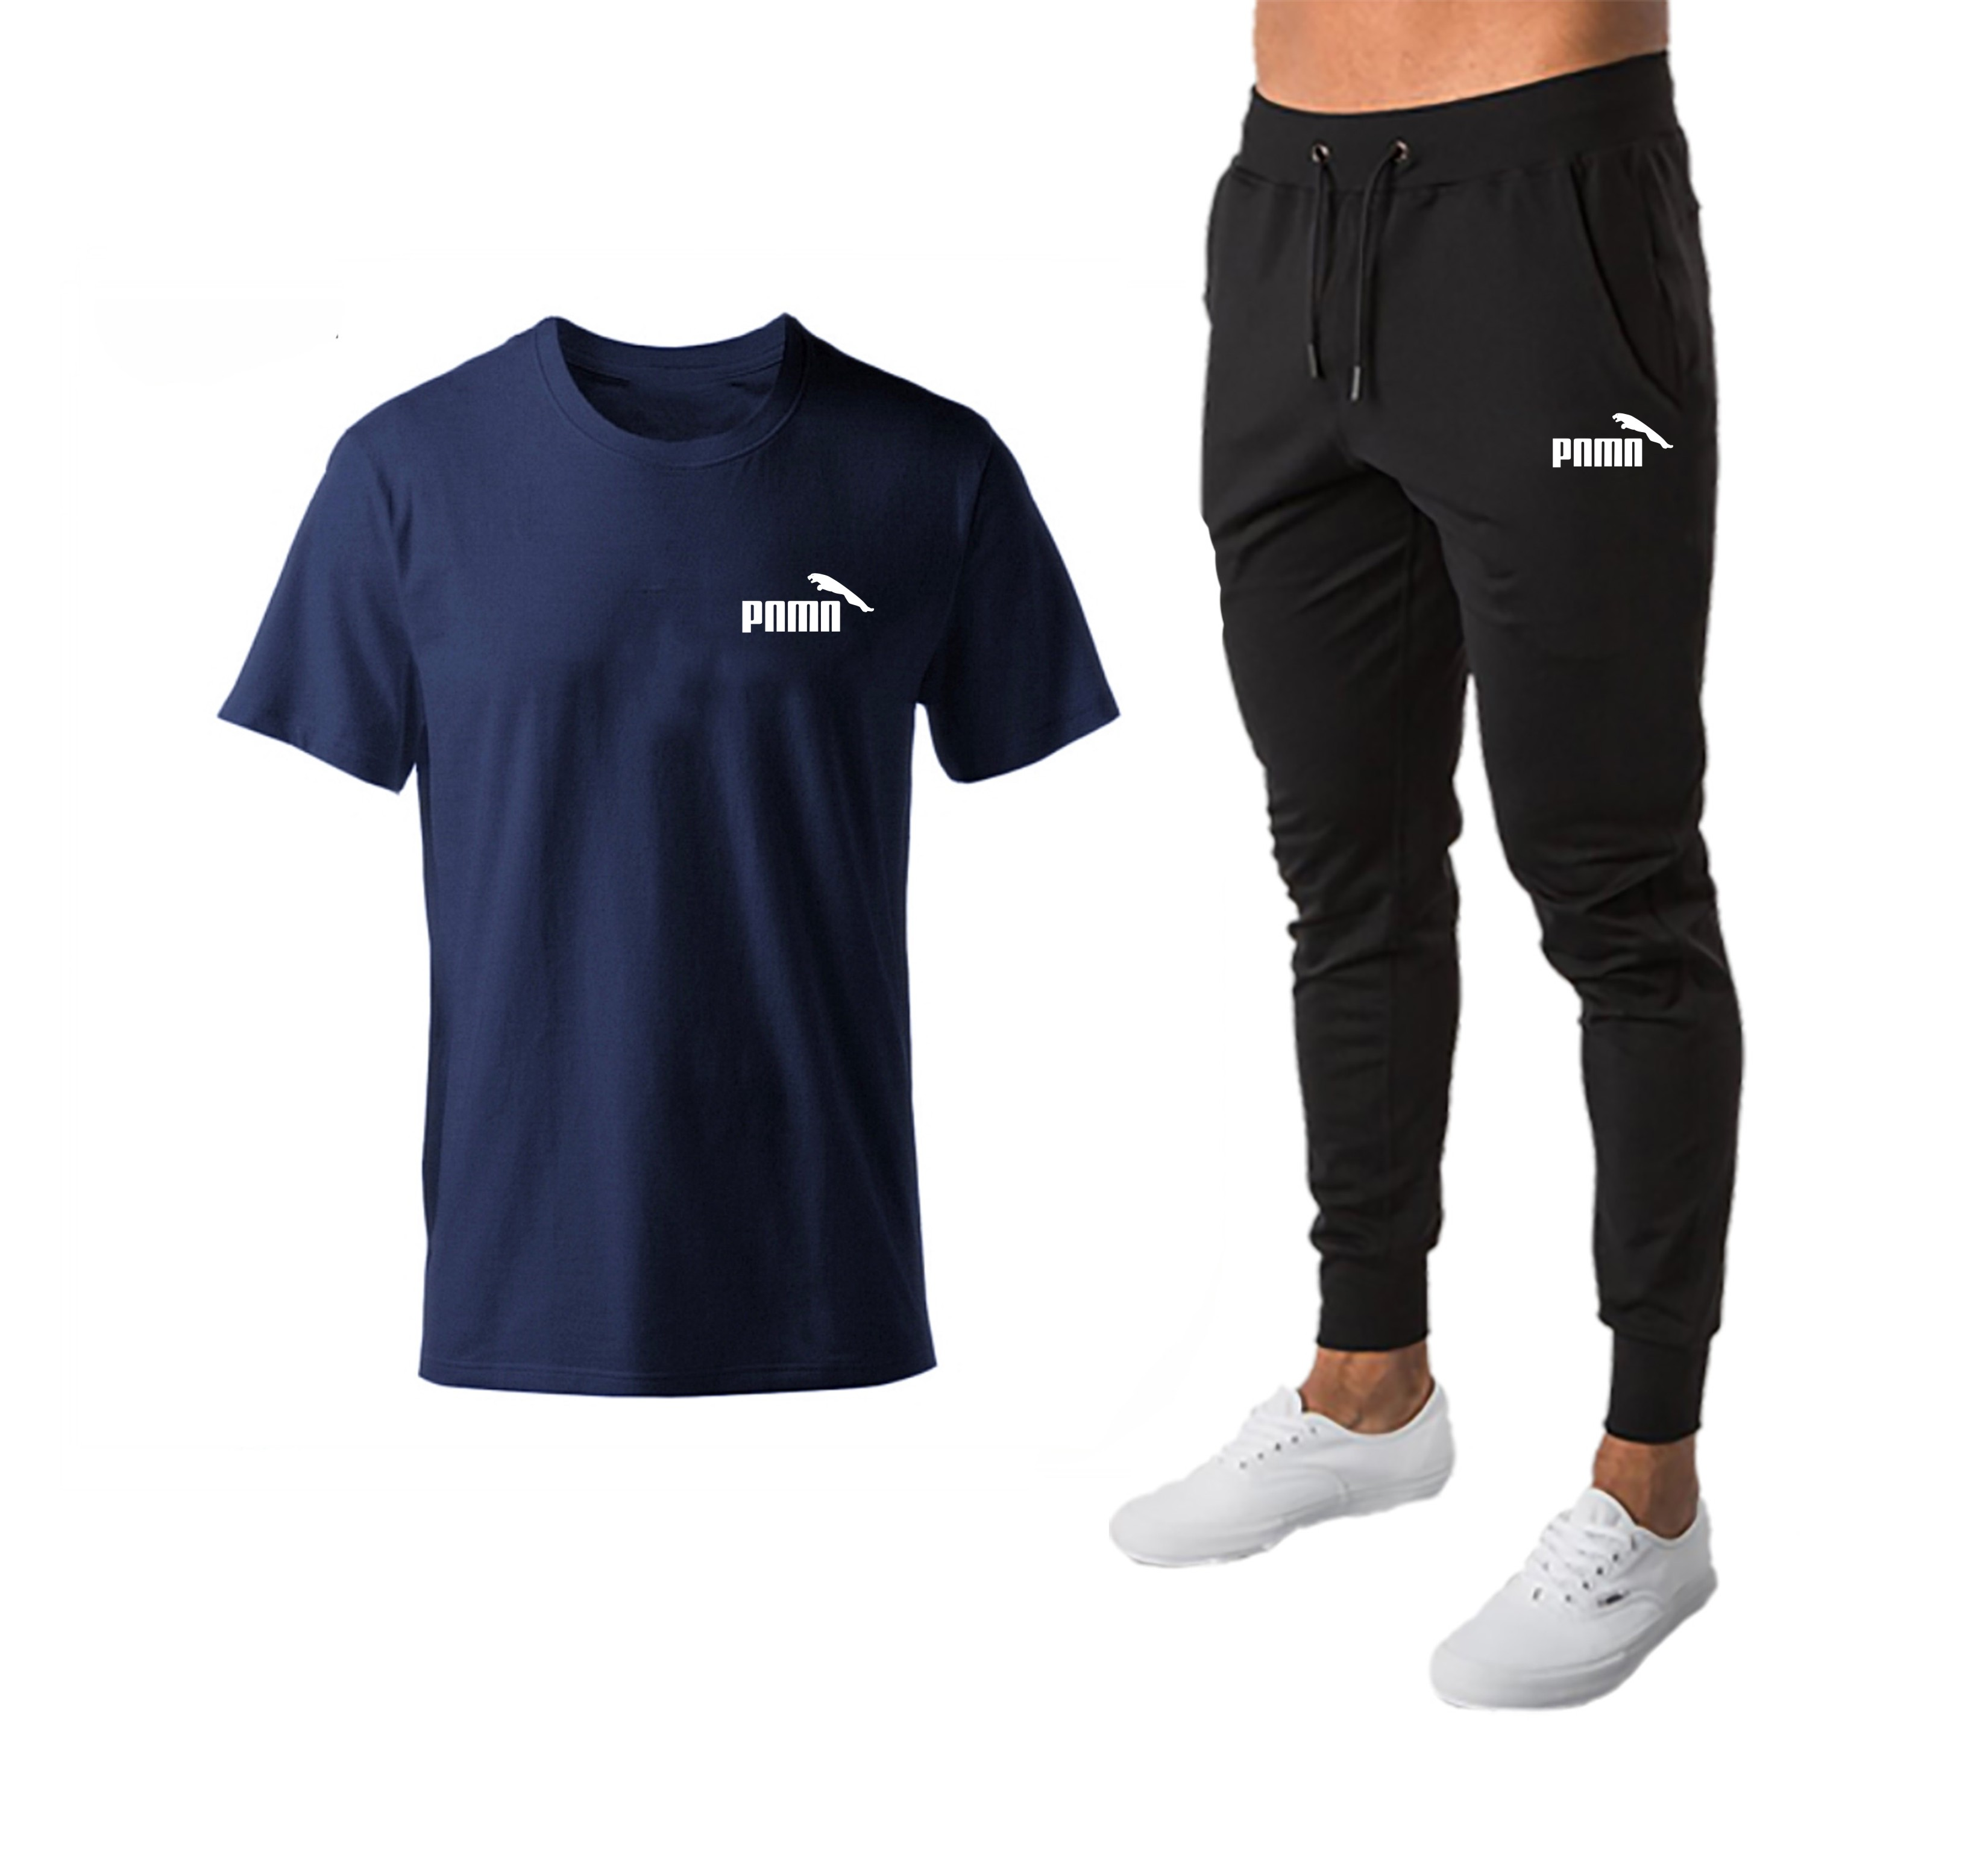 Running Set Men's Tracksuit Sports T Shirt + Jogging Pants Sport Suit Gym Fitness Clothing Running Exercise Workout Clothe